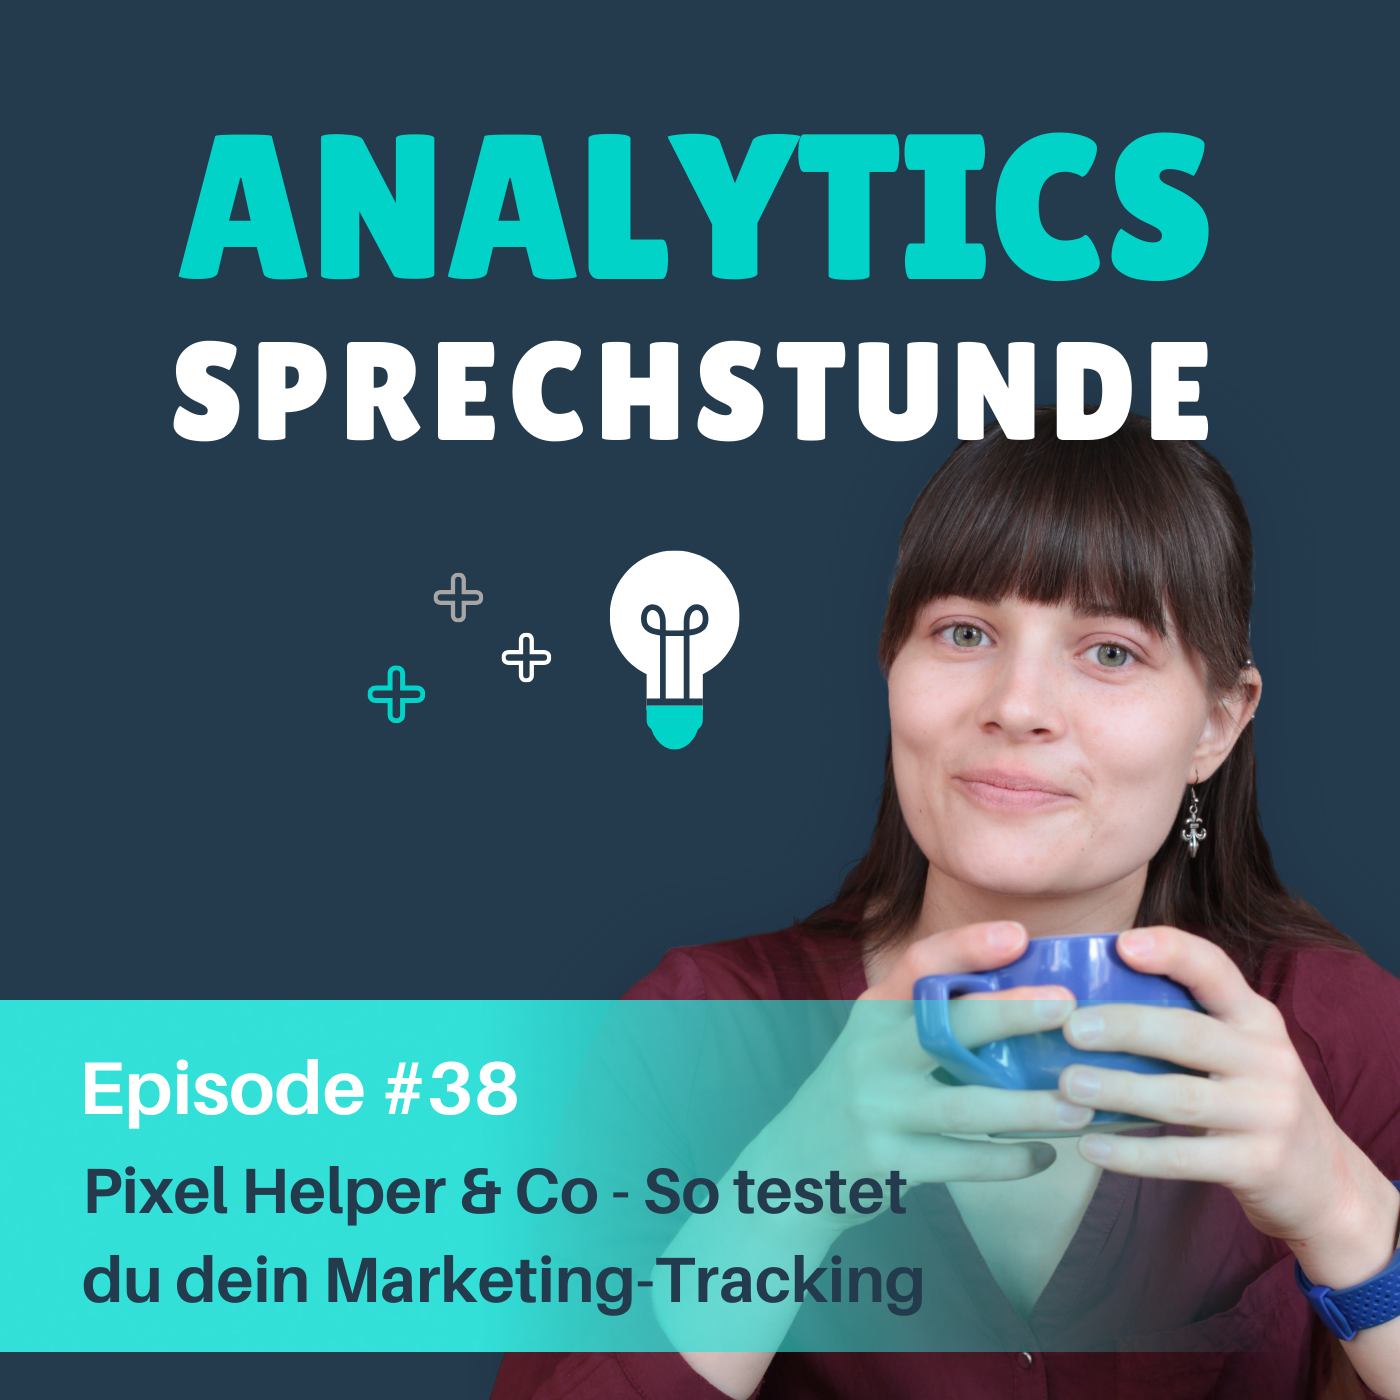 38 Pixel Helper & Co - So testet du dein Marketing-Tracking